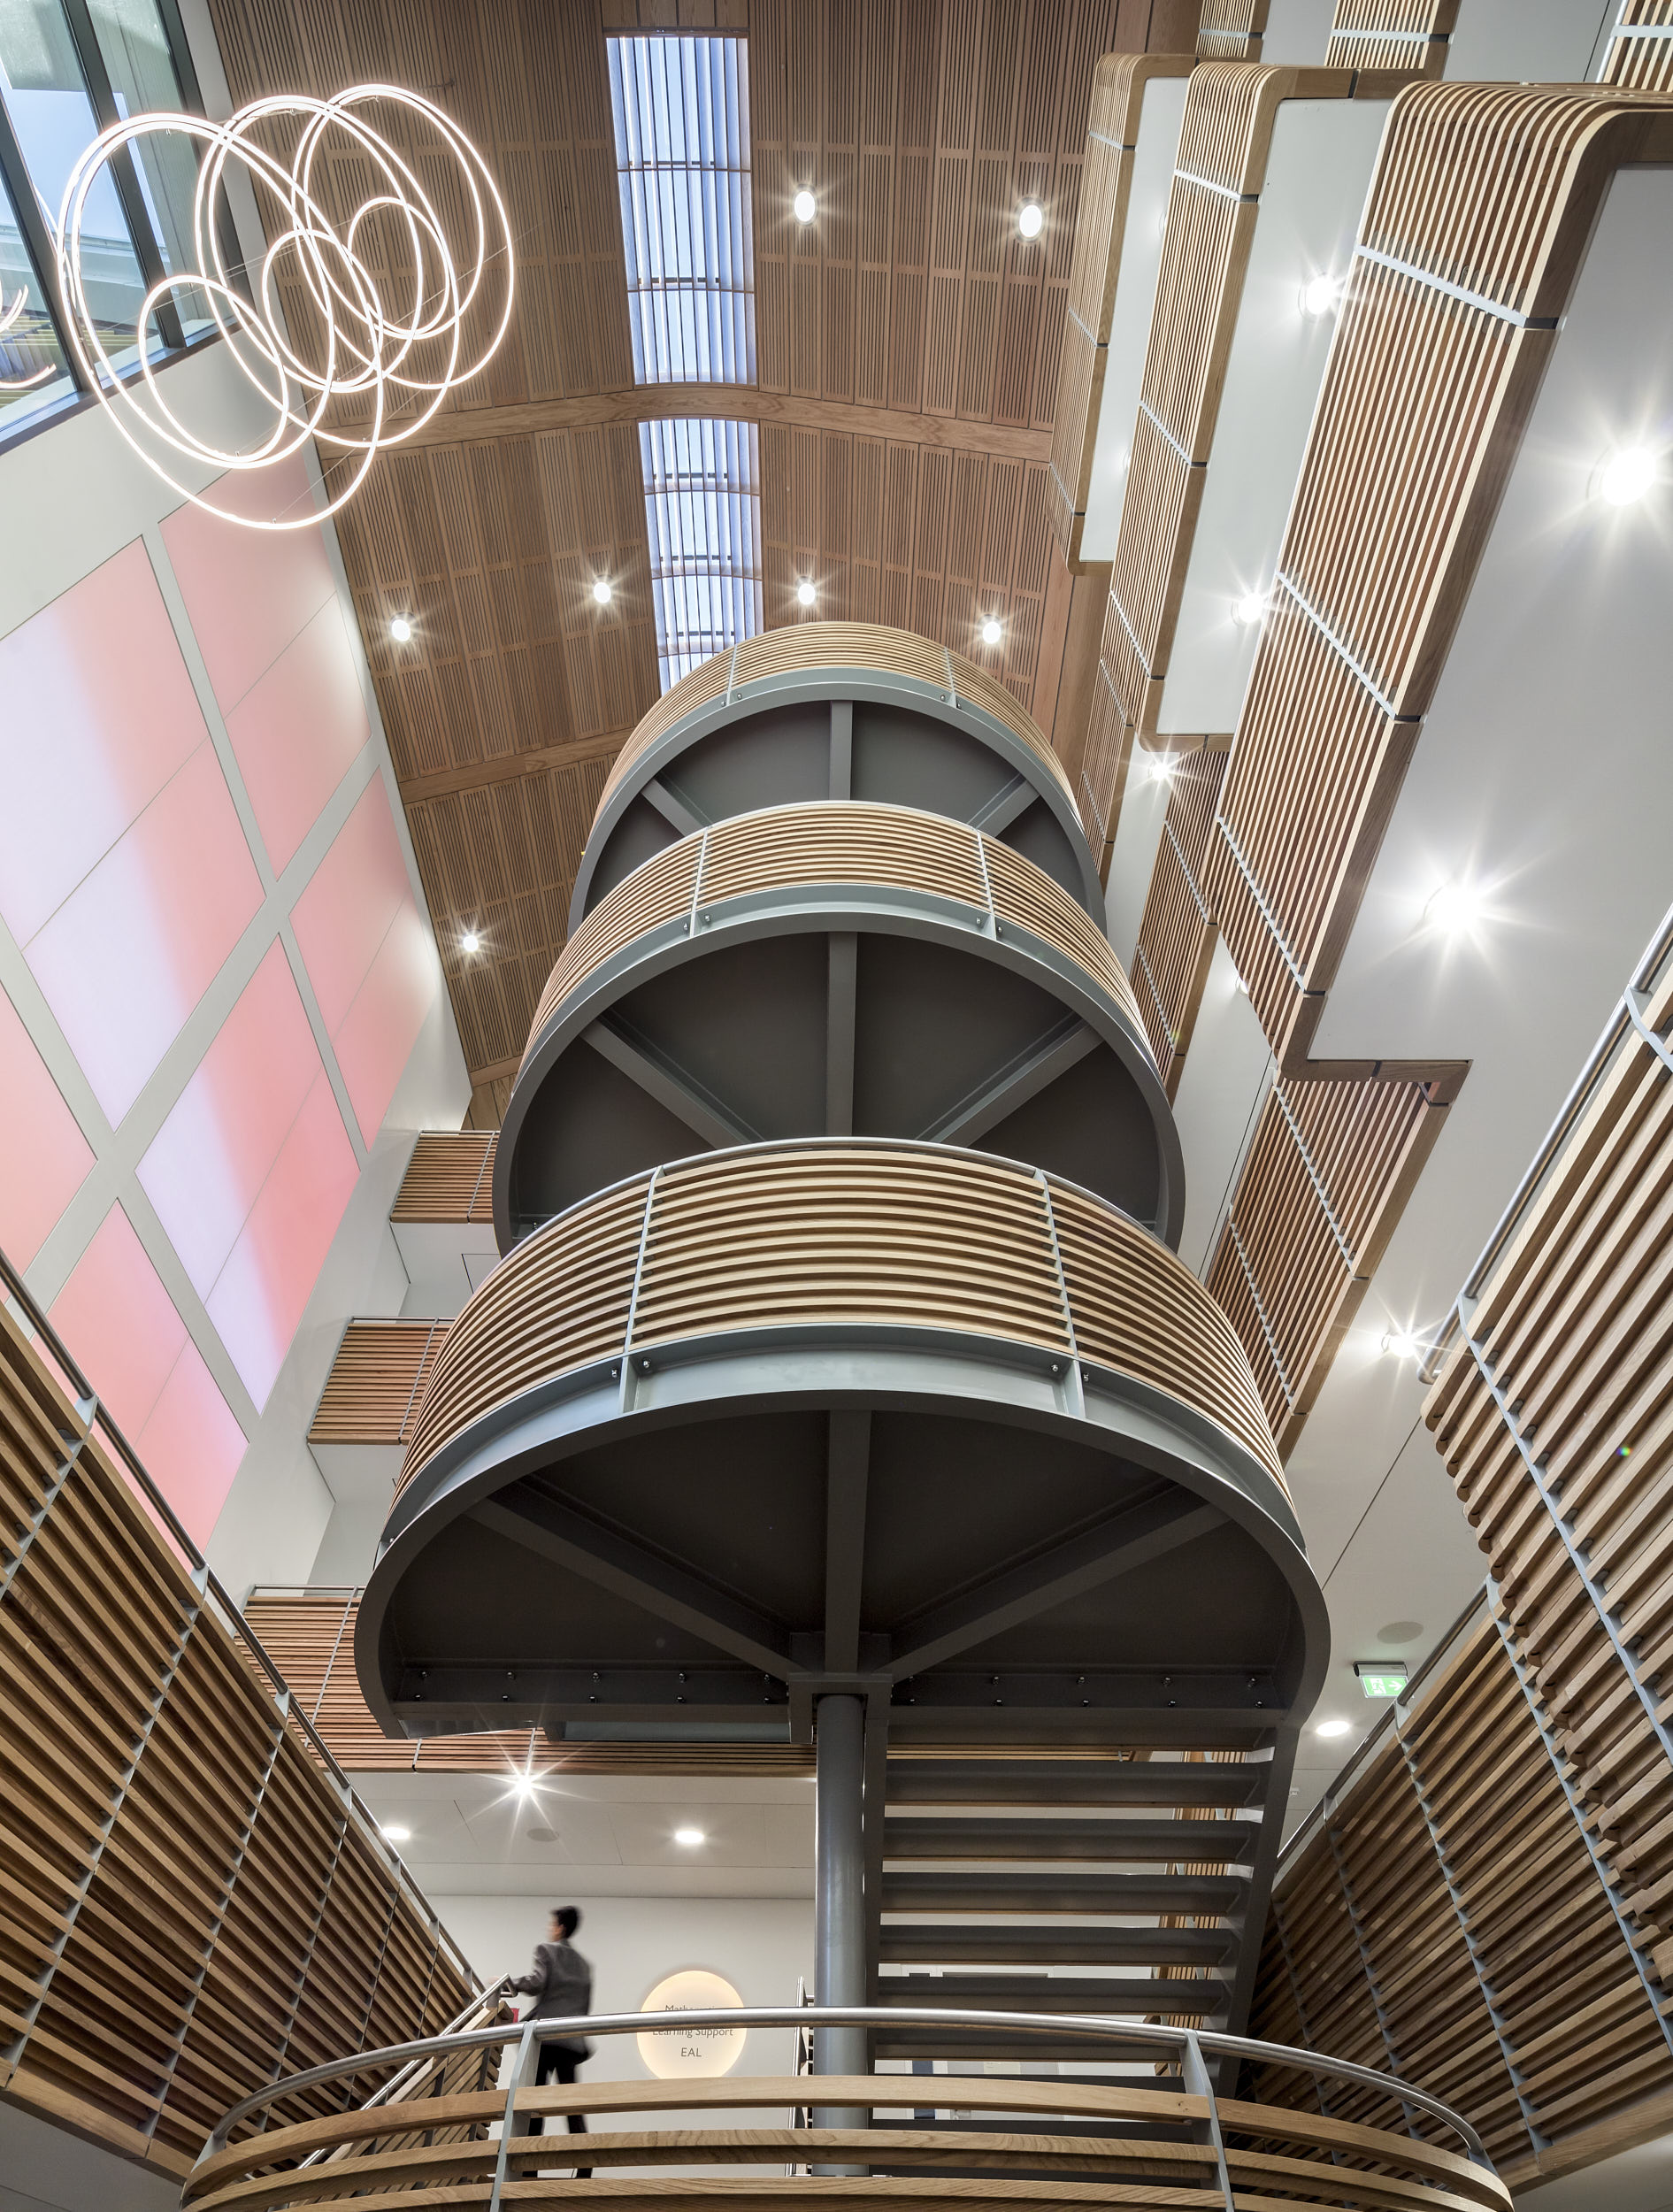 Looking up the atrium at the stair and roof-lights with the stunning timber soffit.